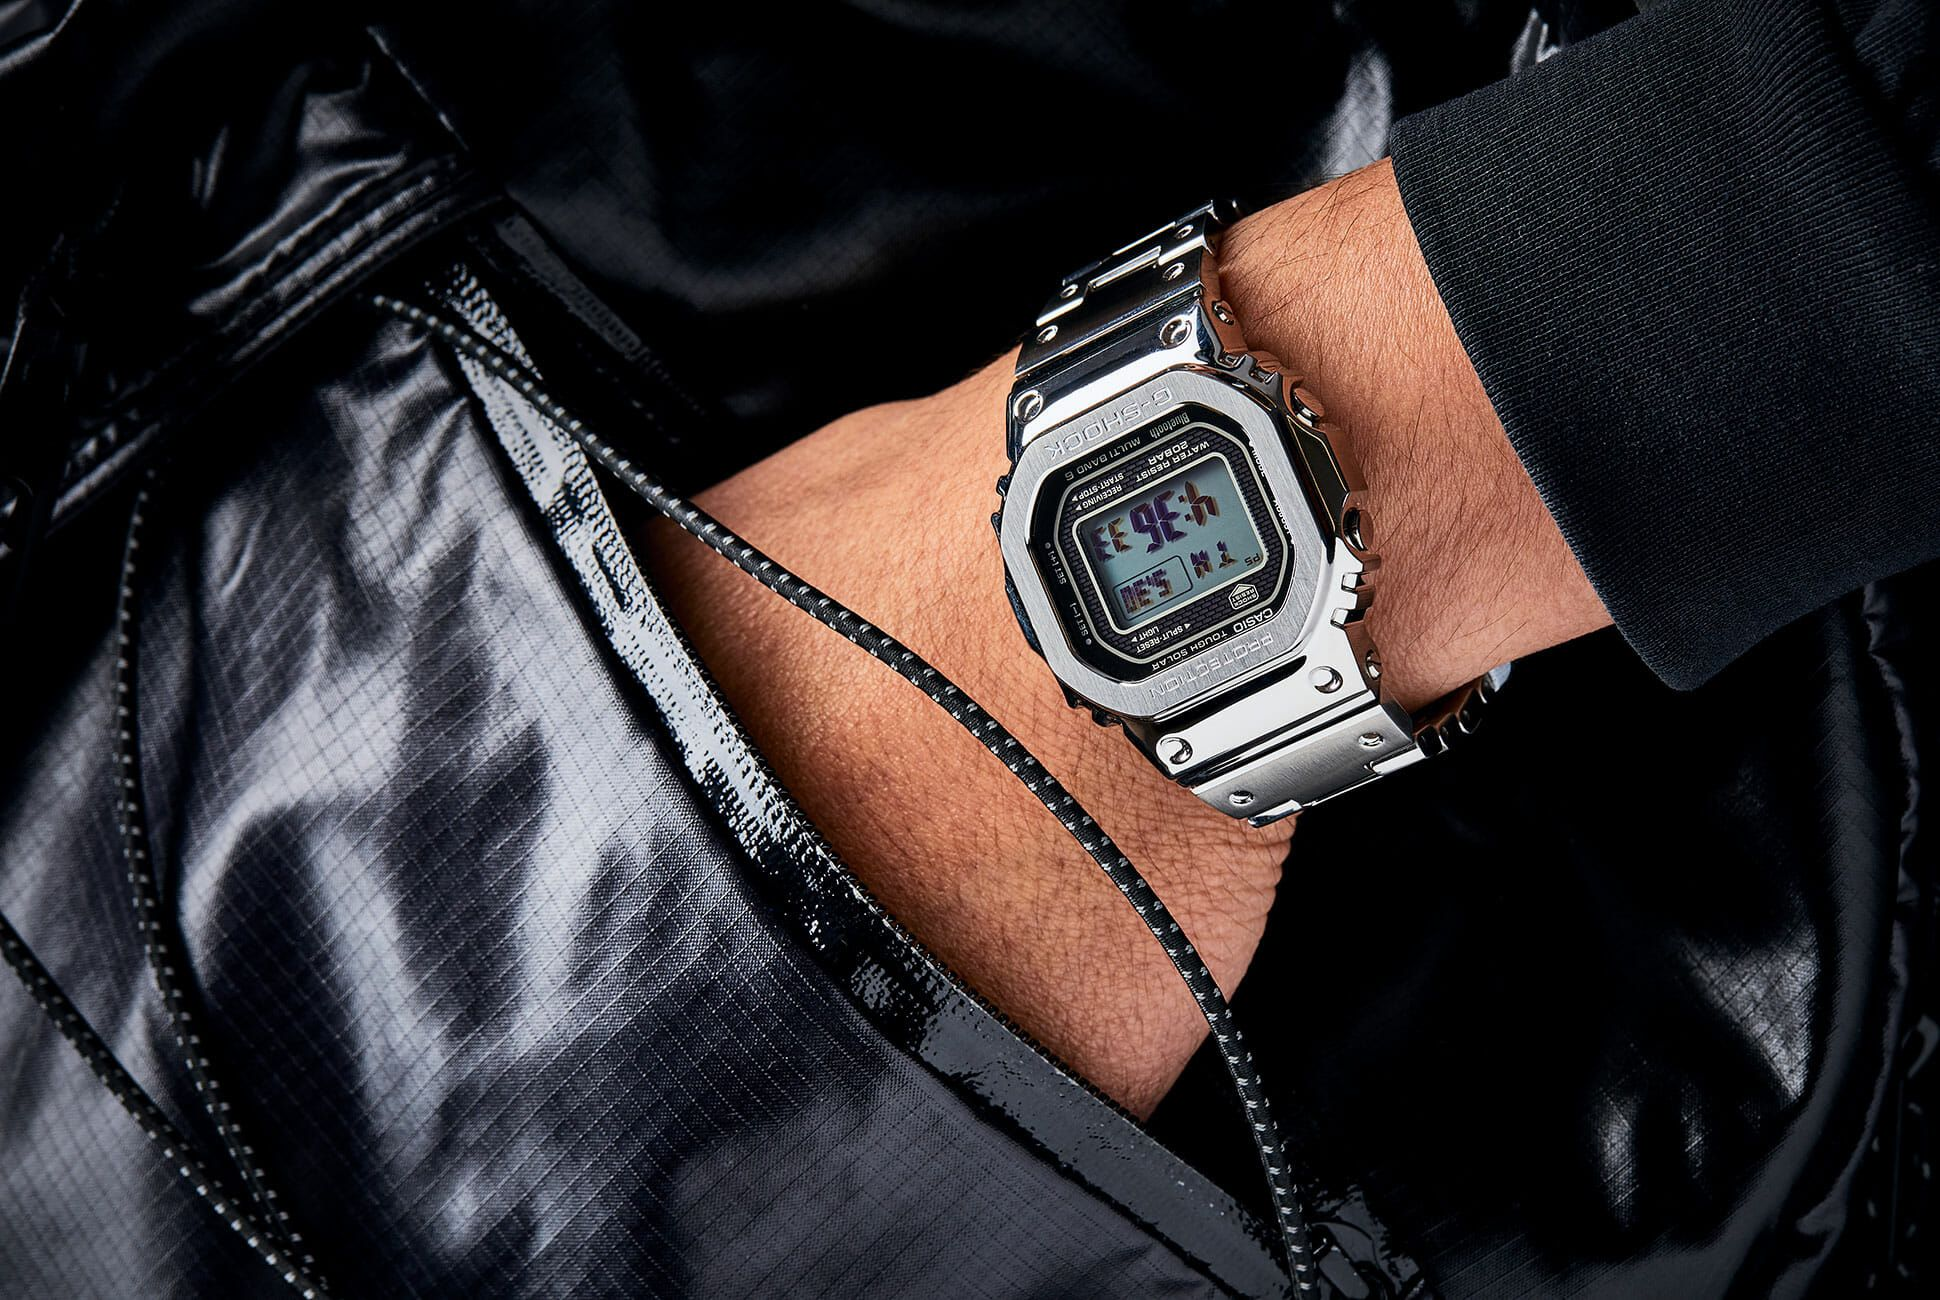 Casio-G-Shock-GMW-b5000-gear-patrol-full-01